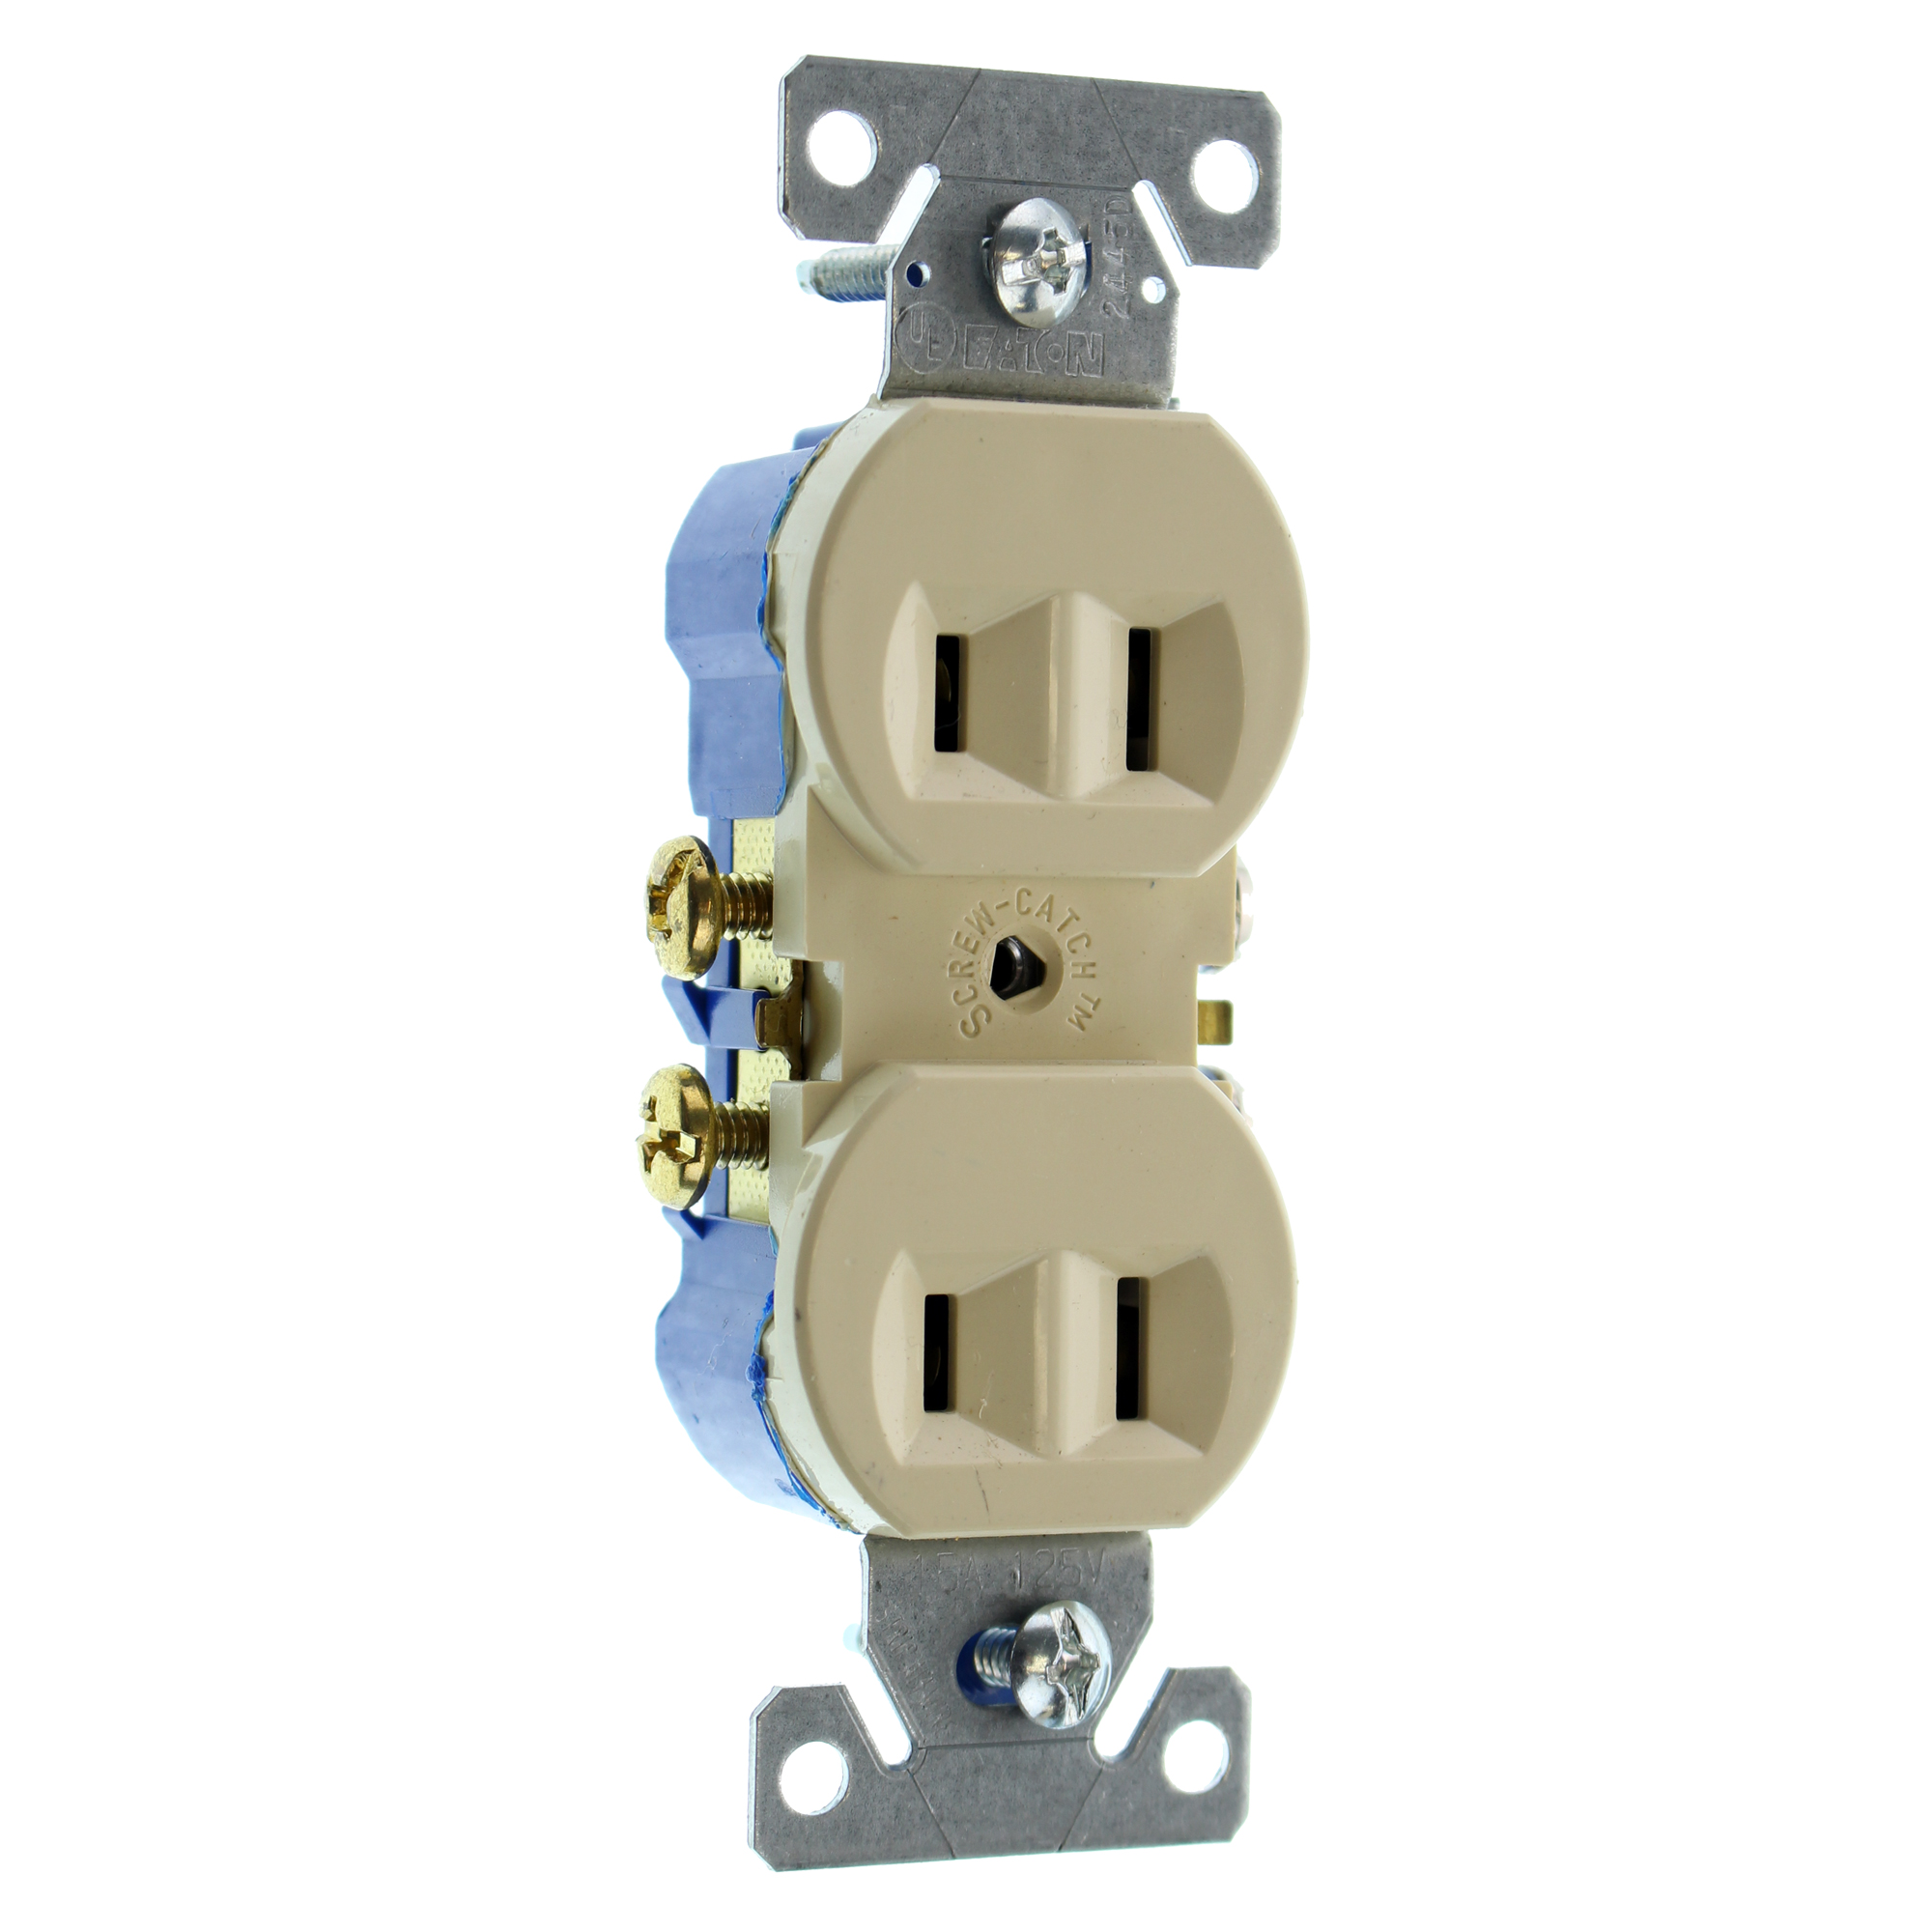 EATON COOPER 736V-SP-L RECETPACLE OUTLET, NON-GROUNDING, 2-WIRE, 15A ...